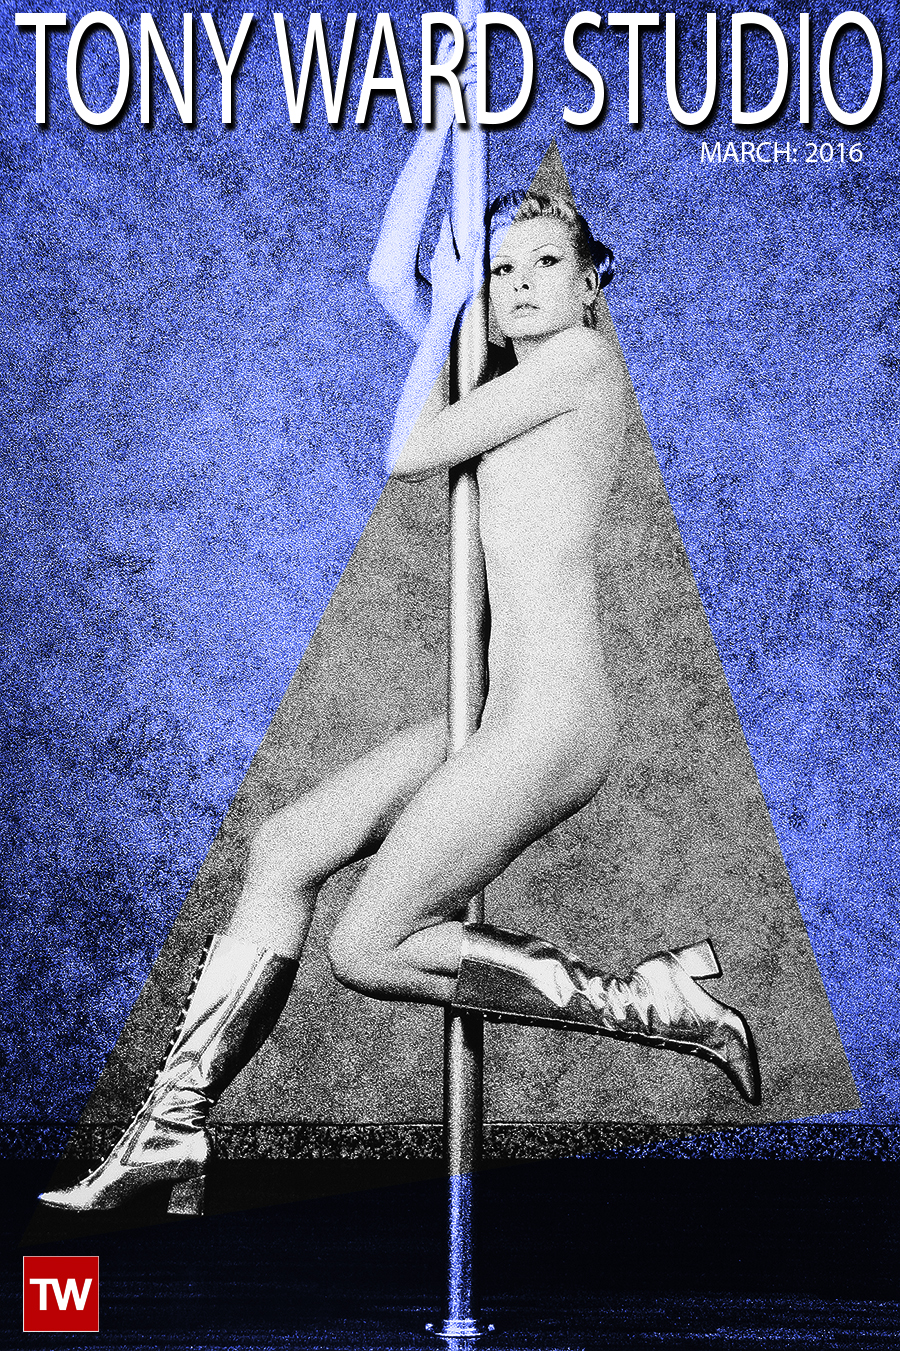 Tony_Ward_photography_studio_cover_march_2016_early_work_casting_calls_nudes_silver_boots_pole_dancing_art